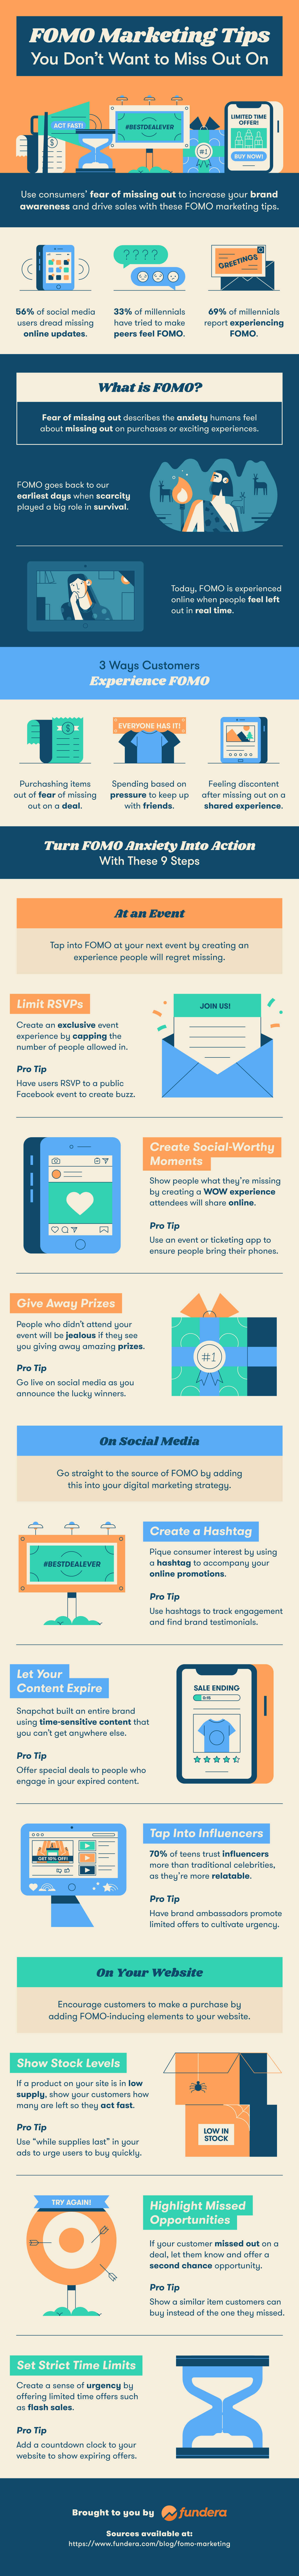 Infographic lists a range of FOMO marketing techniques